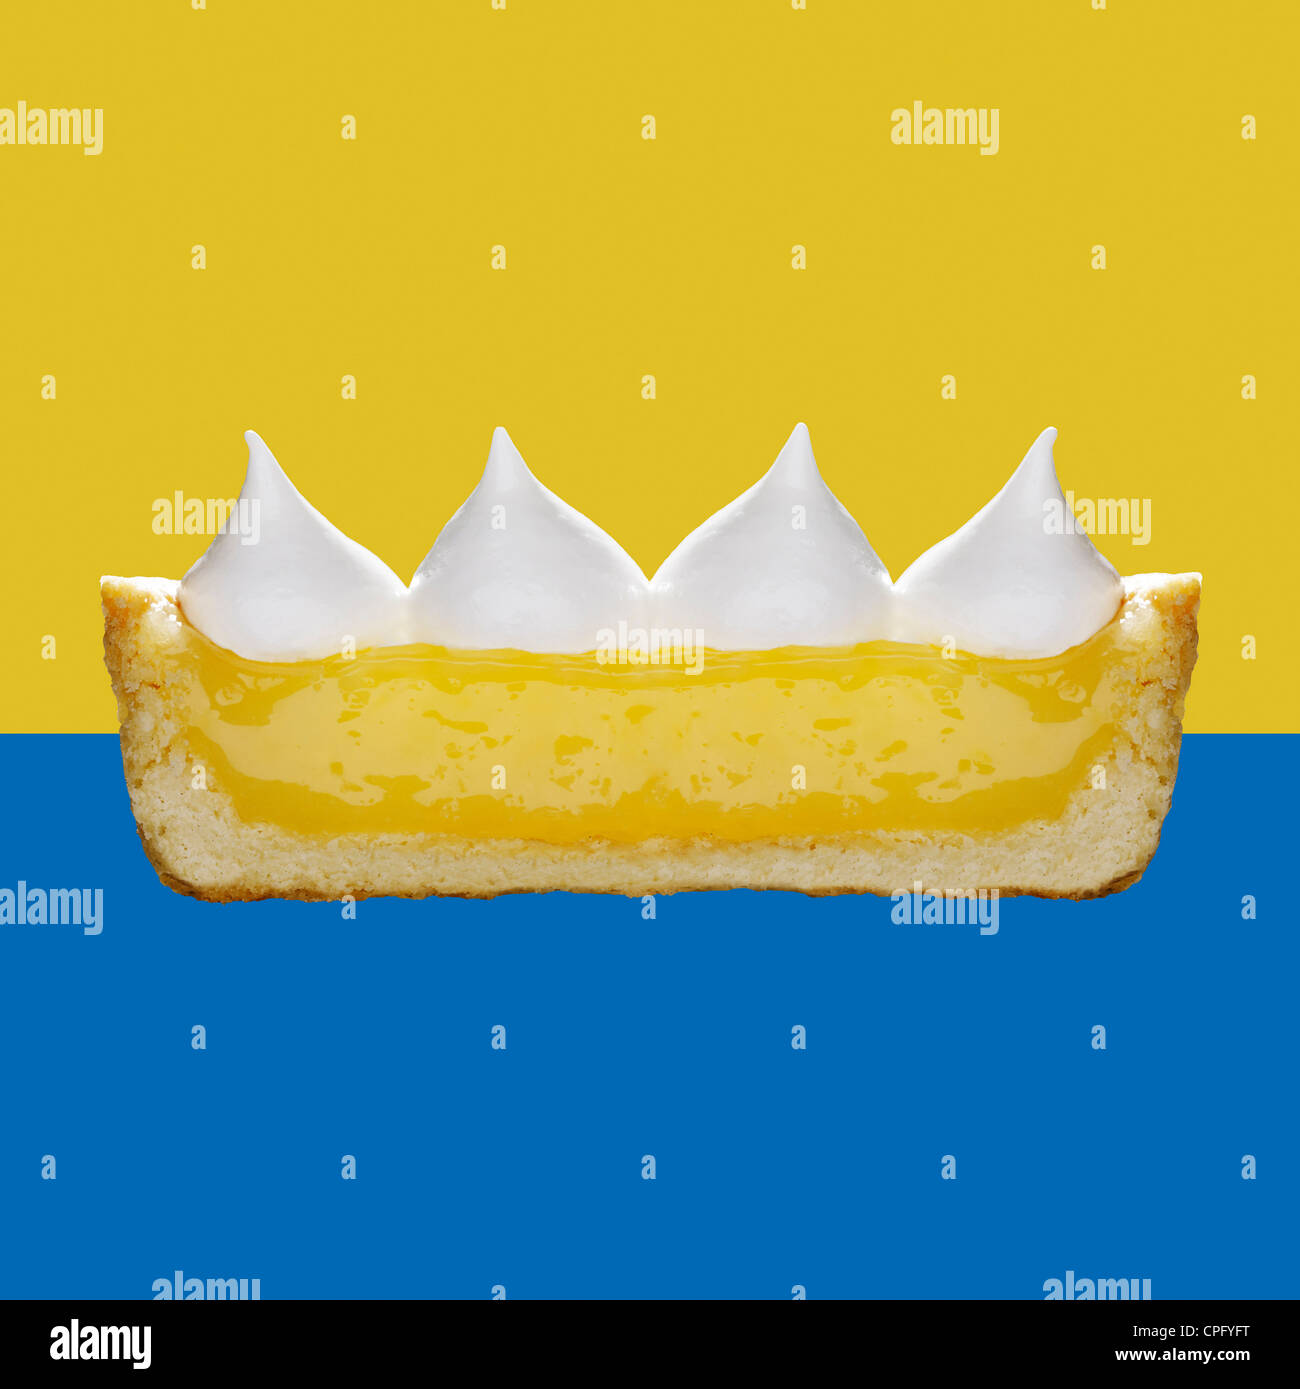 Tarte citron meringuée, Coupe transversale montrant les couches Photo Stock